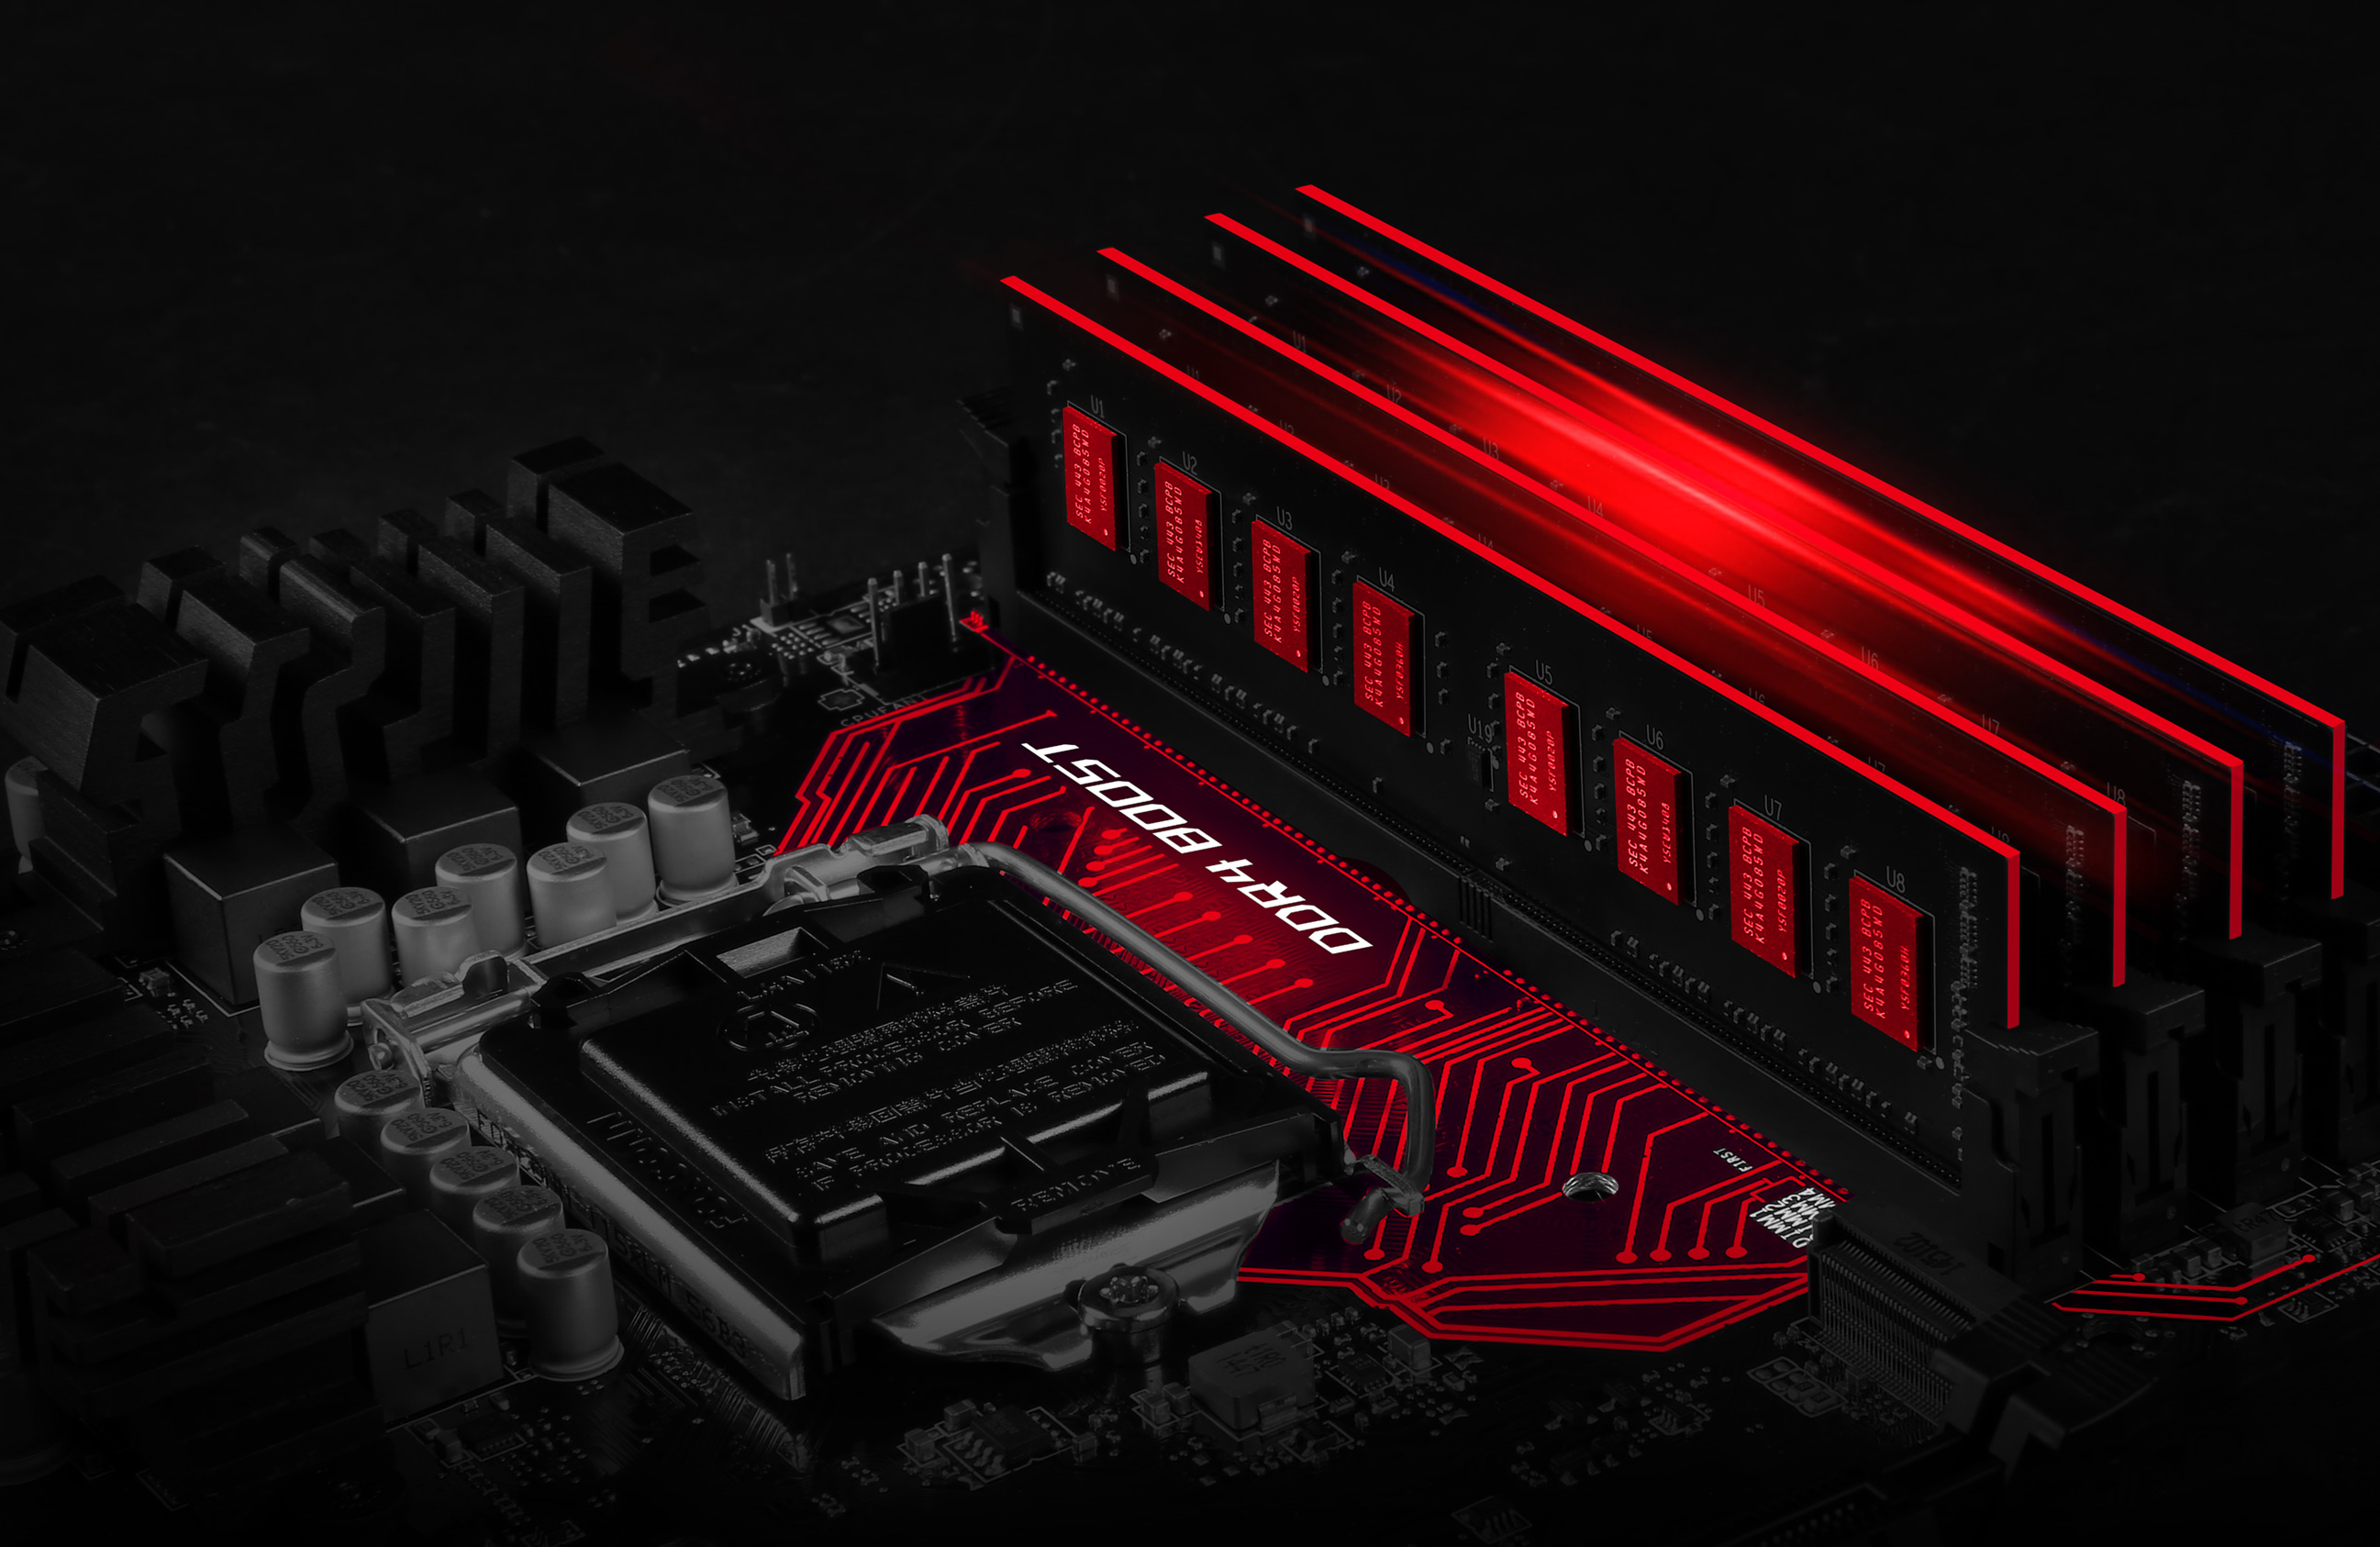 DDR4 Boost: What is it exactly? - Update